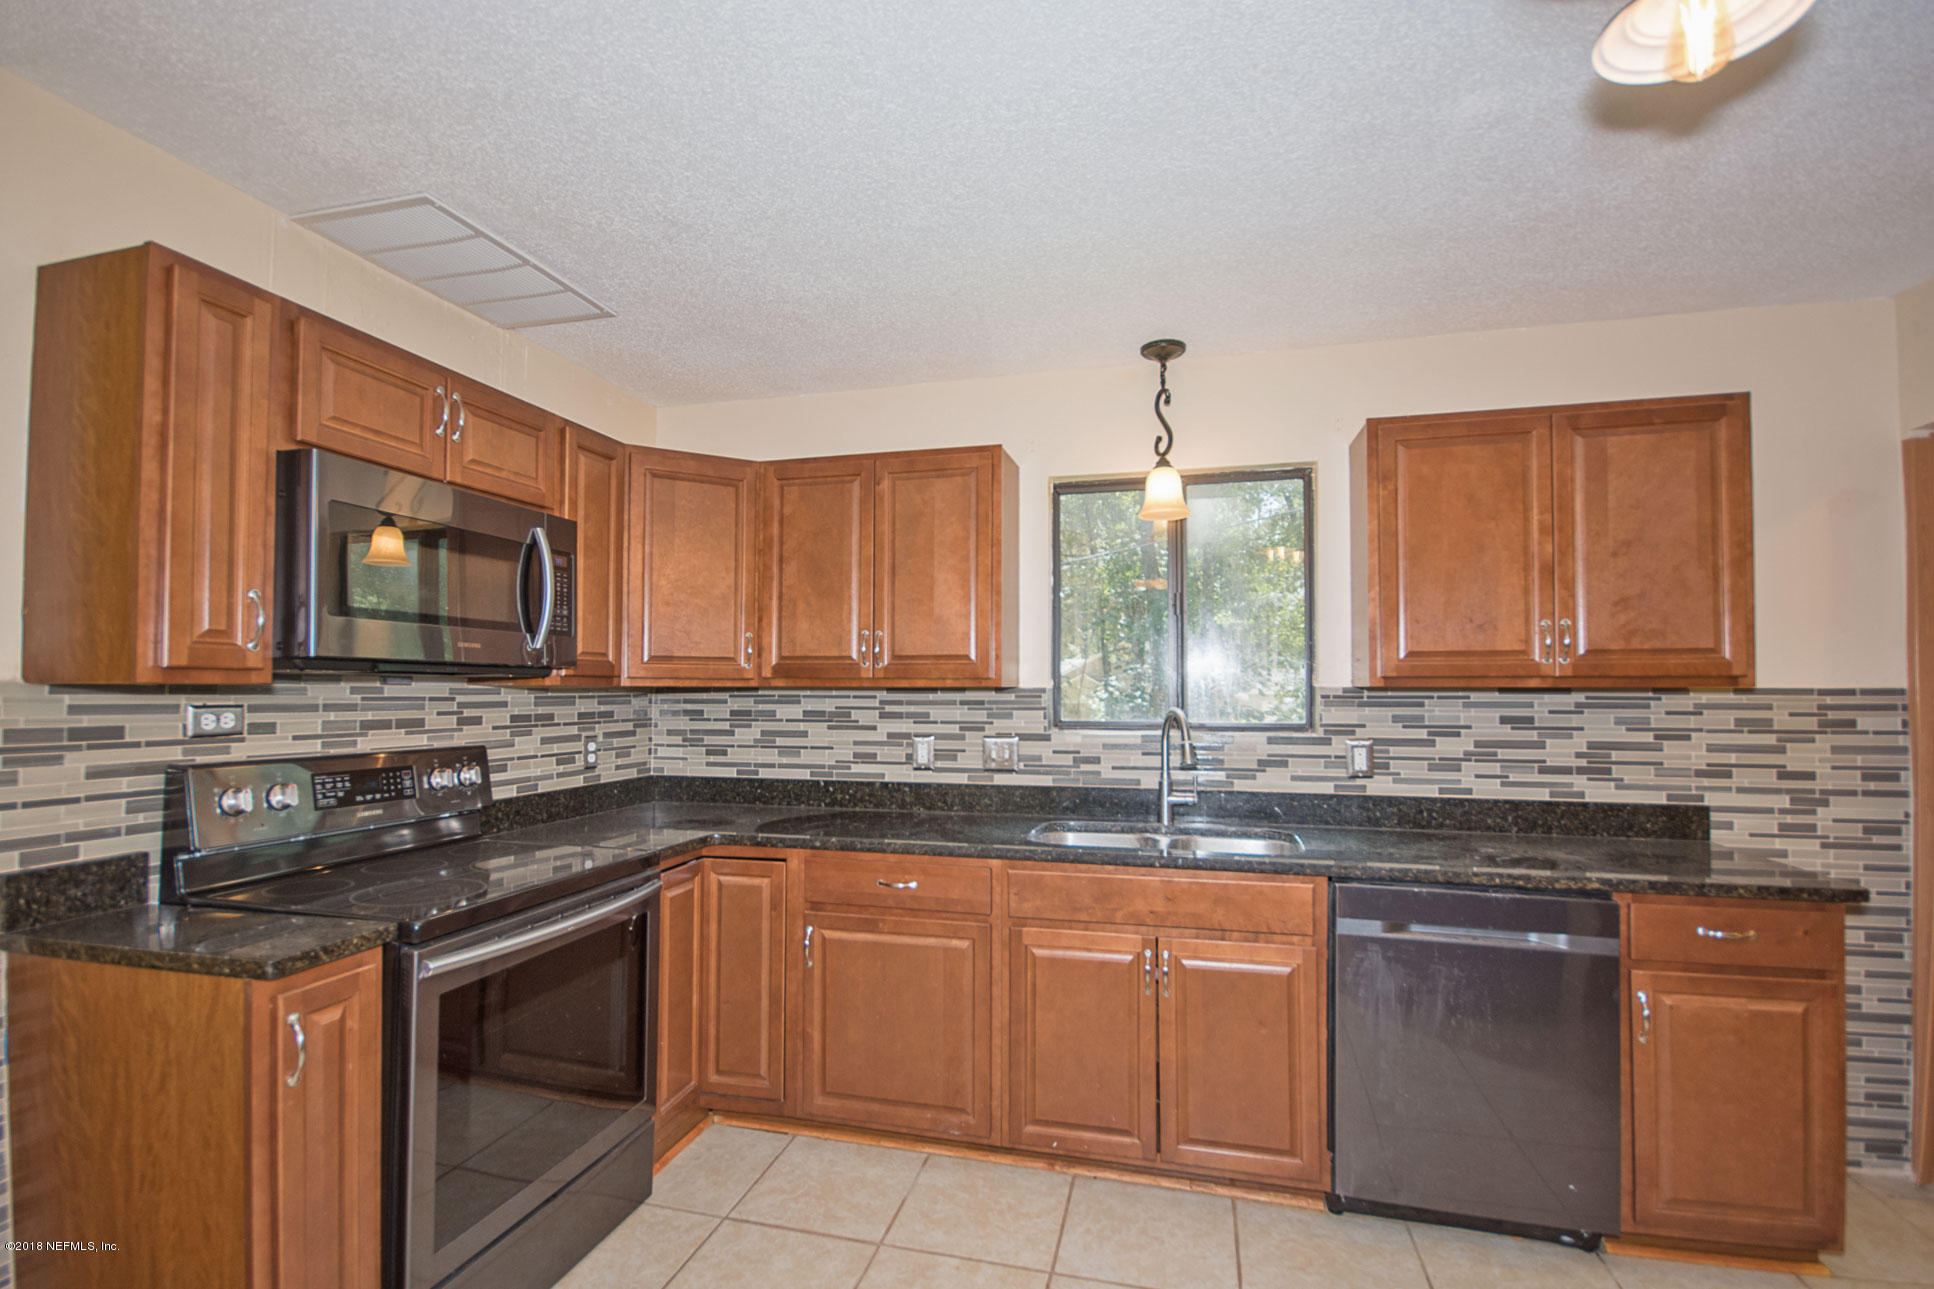 562 TUNG HILL, TALLAHASSEE, FLORIDA 32317, 5 Bedrooms Bedrooms, ,3 BathroomsBathrooms,Residential - single family,For sale,TUNG HILL,959359